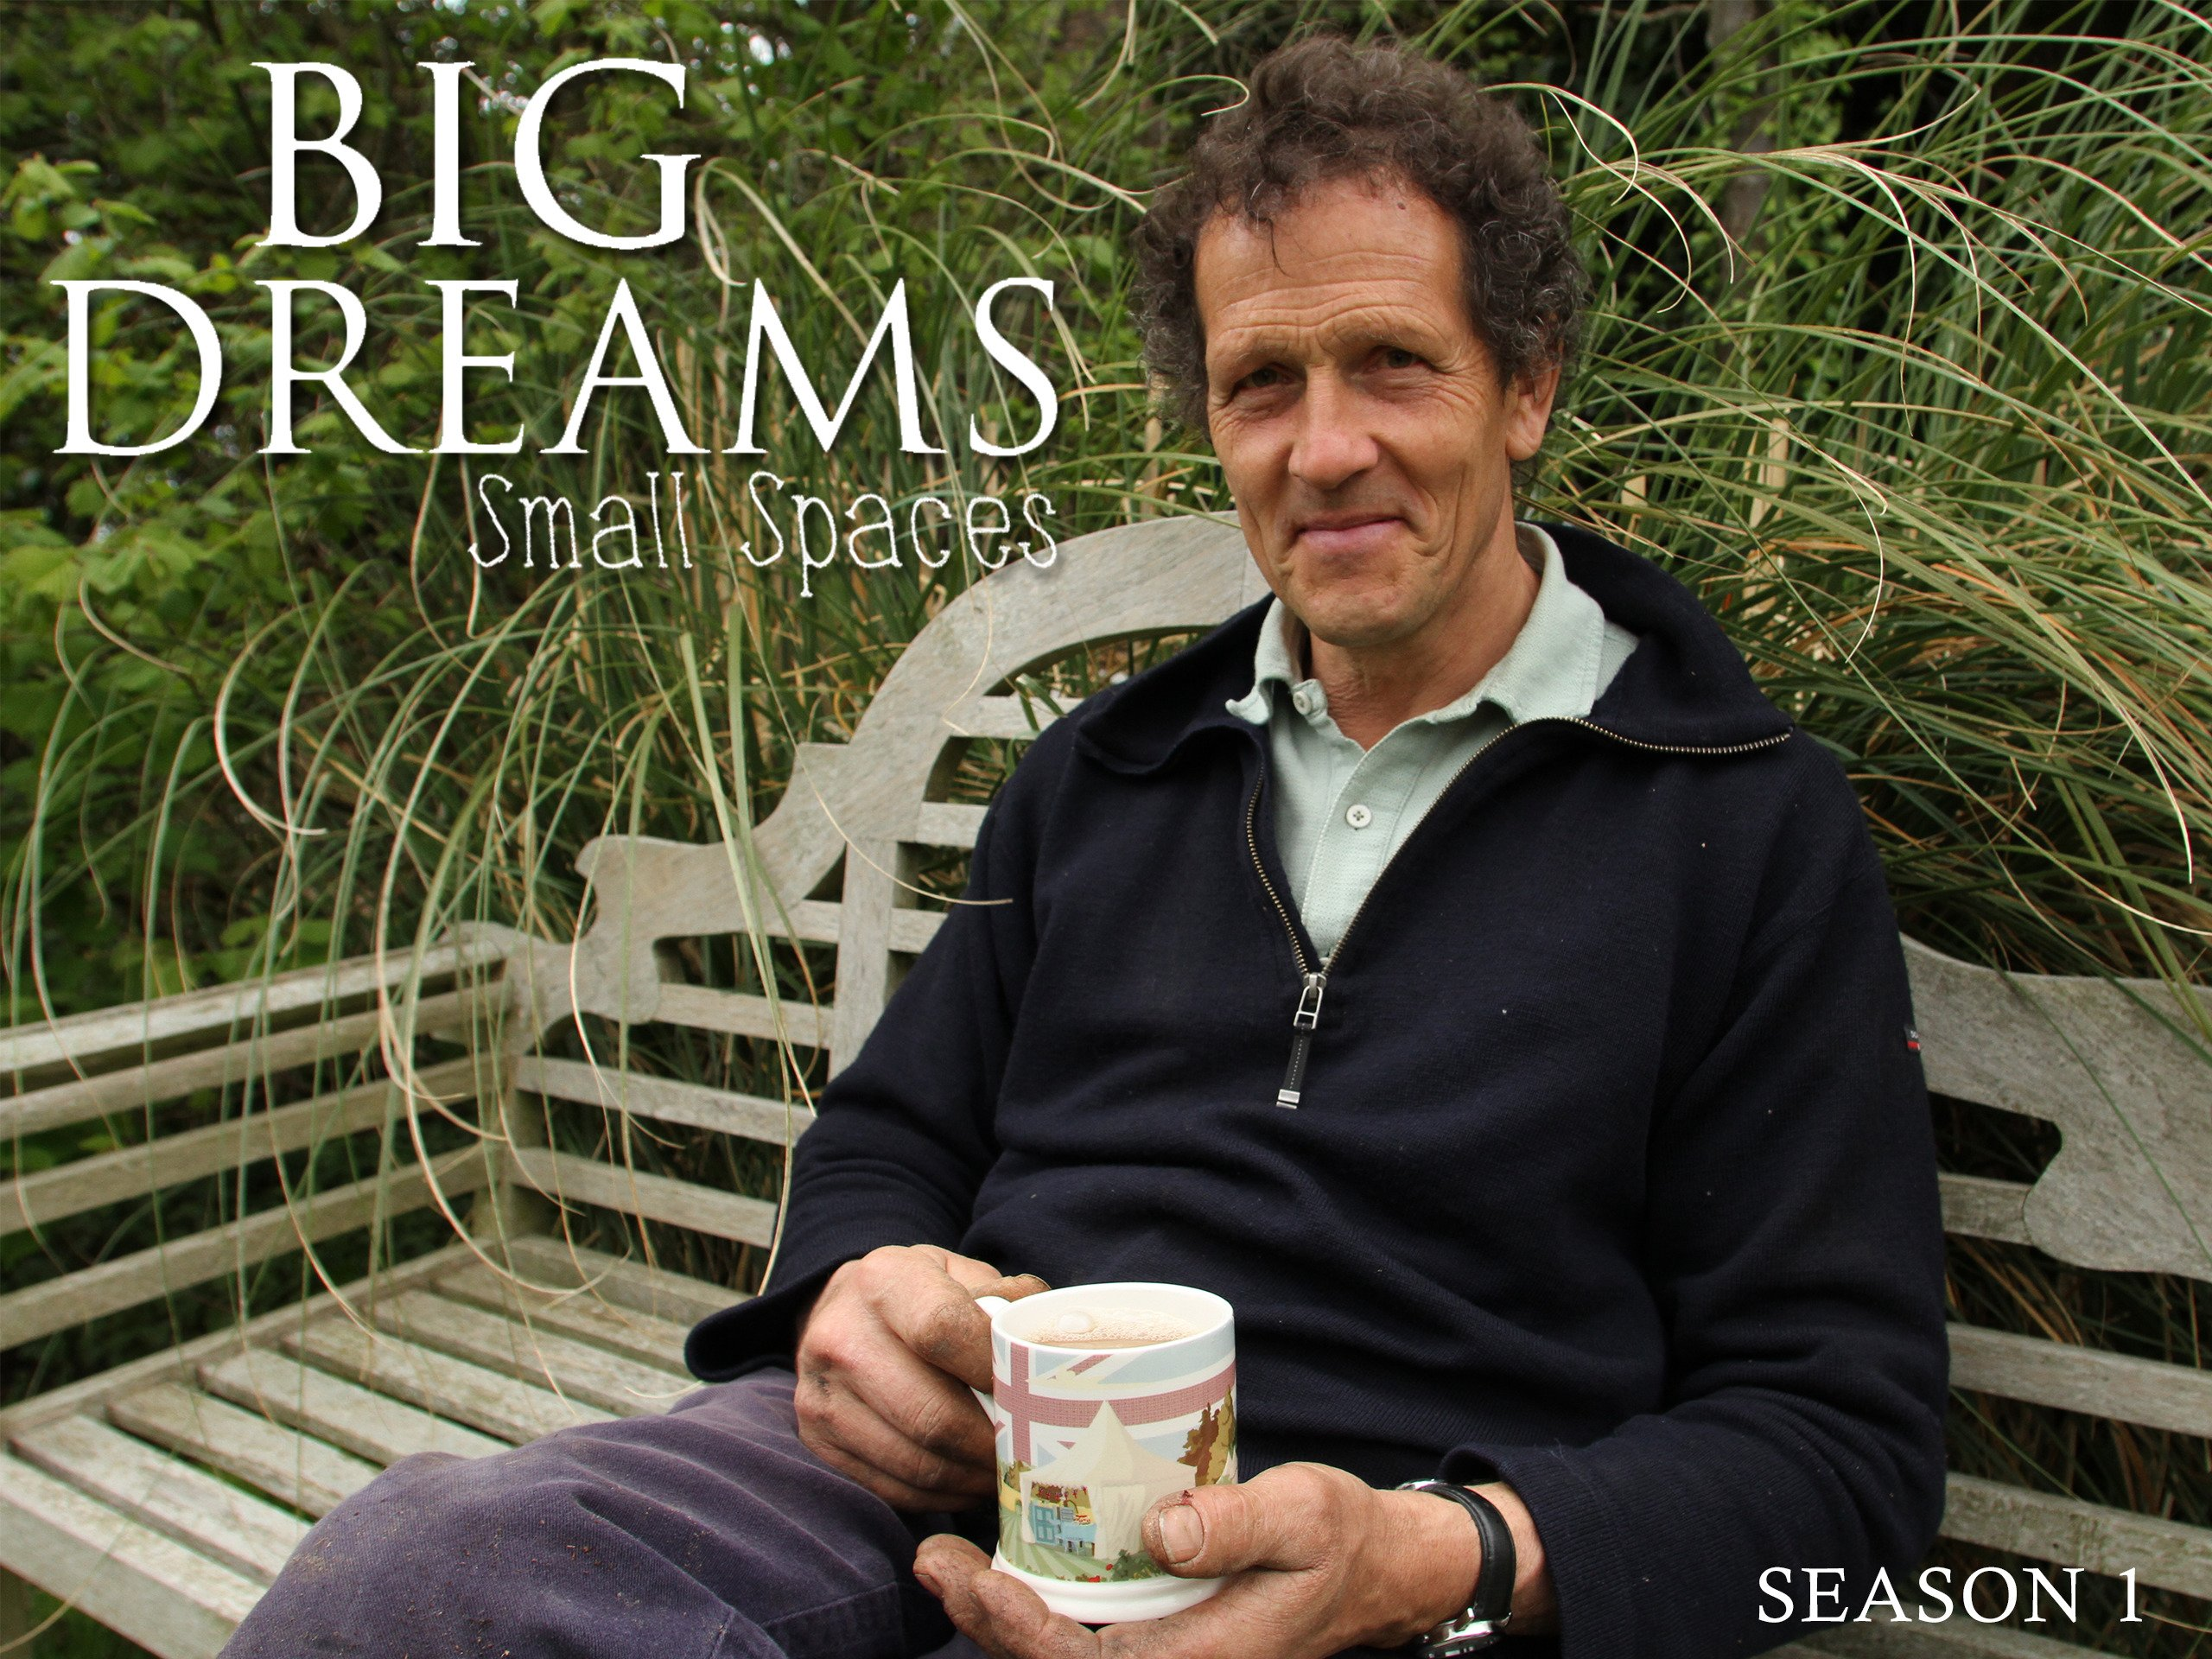 Amazon.com: Big Dreams Small Spaces - Season 1